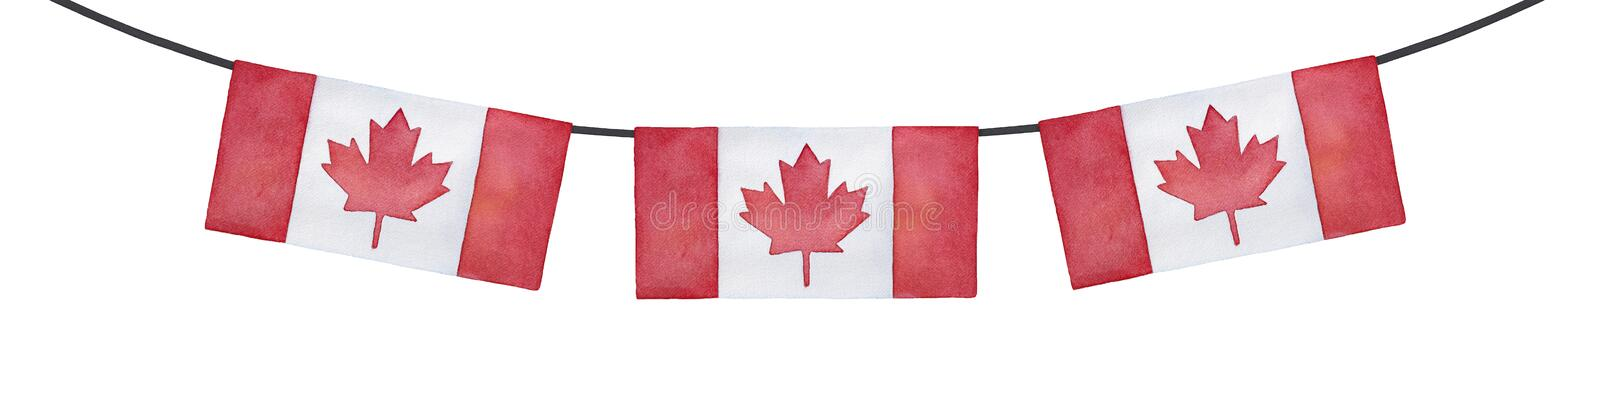 Horizontal bunting decoration with flag of Canada. Bright red colour, rectangular shape. Handdrawn watercolour drawing on white, cut out clip art element for royalty free illustration